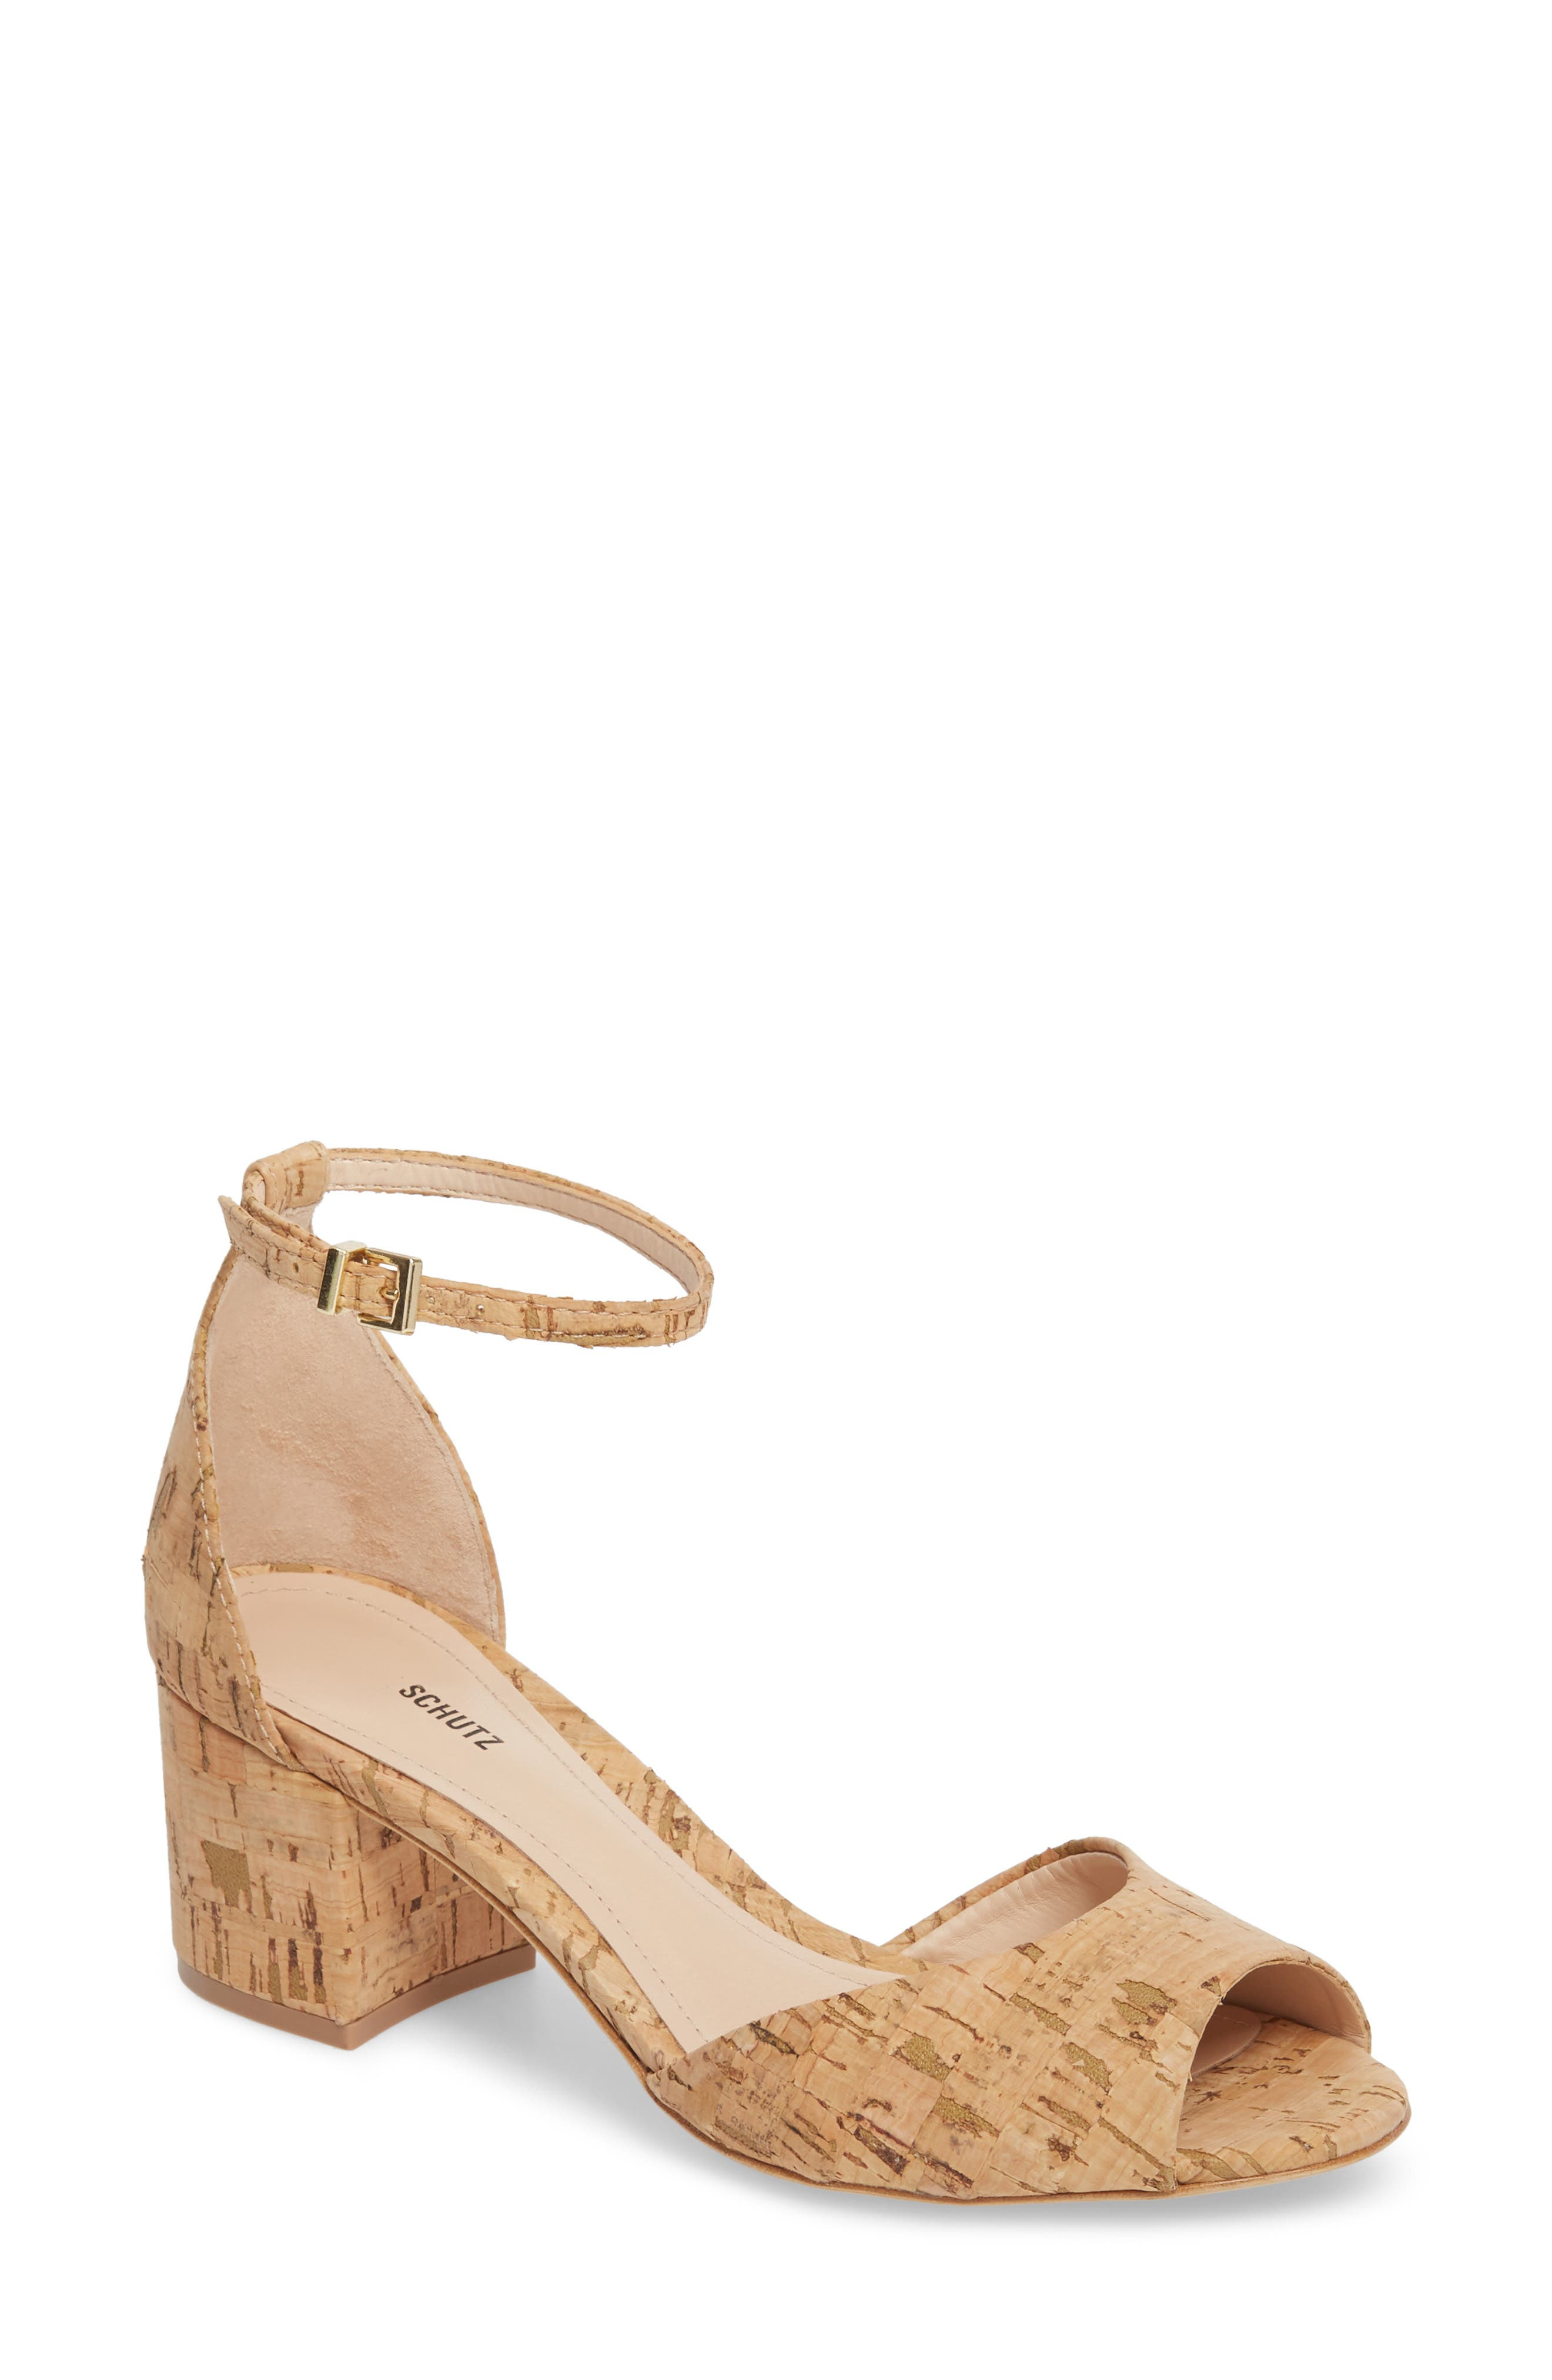 Roama Block Heel Sandal,                         Main,                         color, Natural